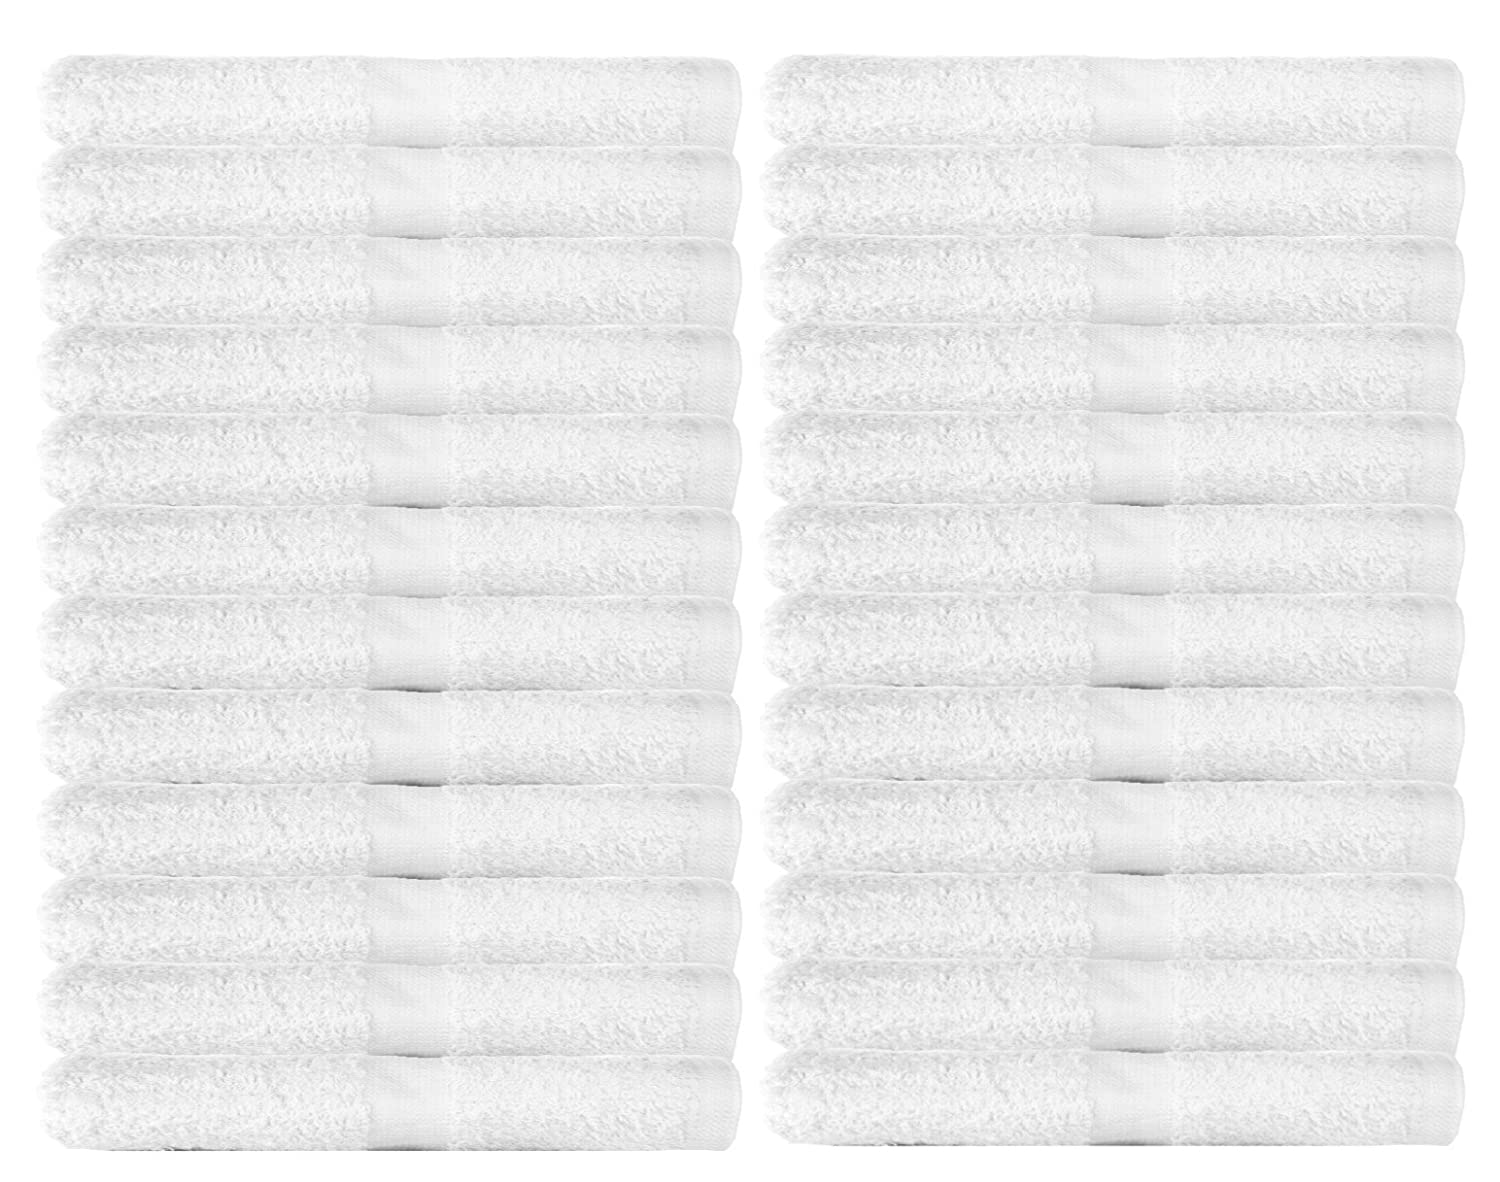 WhiteBasics Cotton Washcloths for Bathroom-KitchenCleaning-Hotel-Gym - Super Soft Absorbent Towels- 24 Pack - White - 12x12 Inch